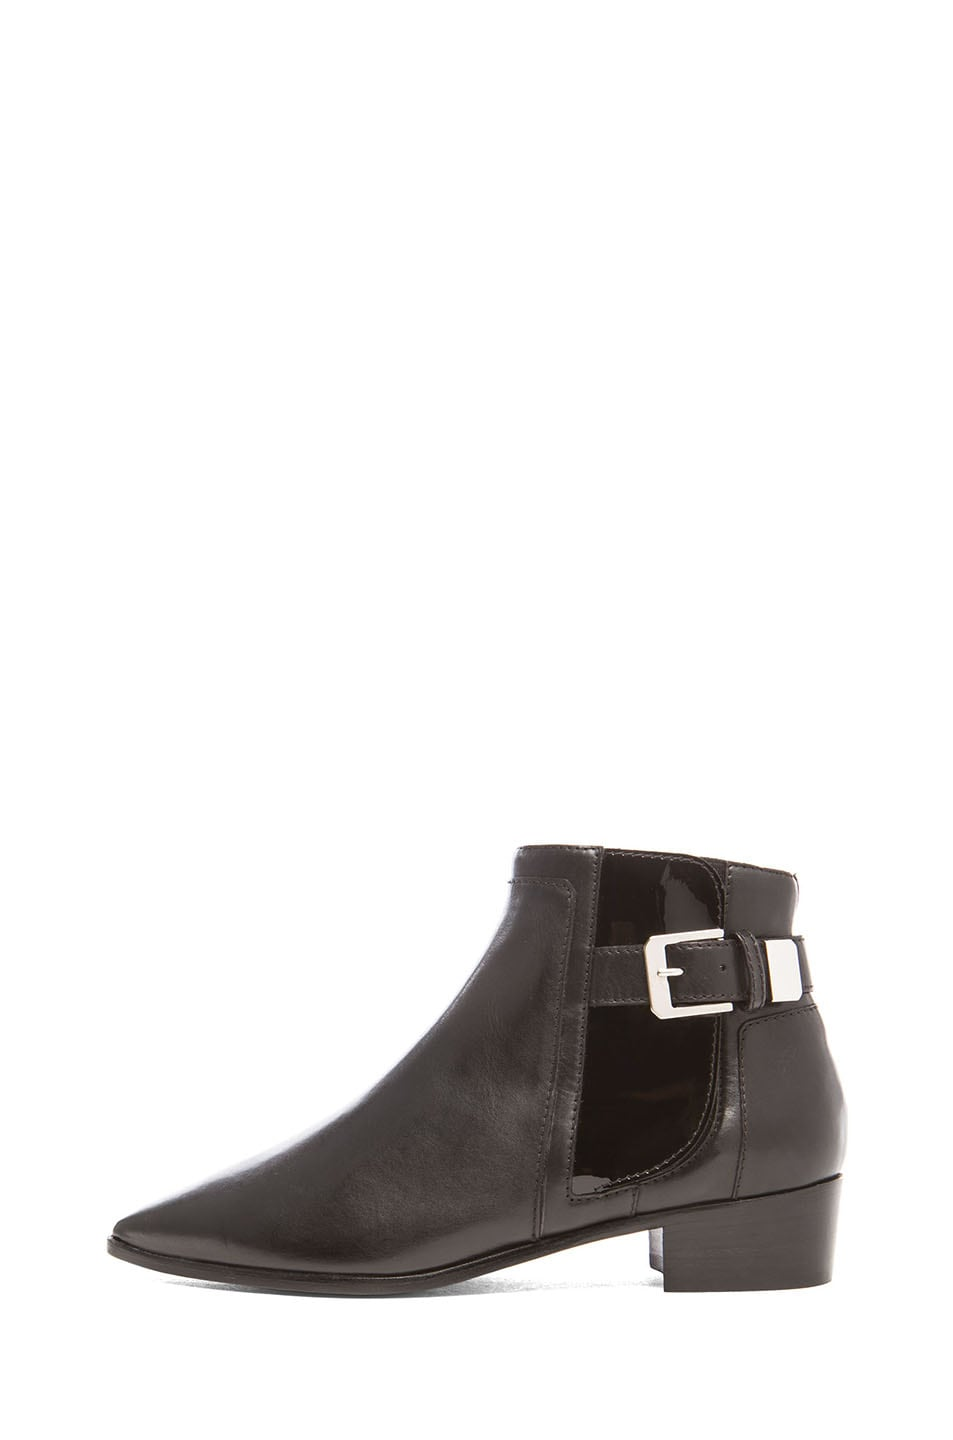 Image 1 of Laurence Dacade Ed Calfskin Leather Booties in Black